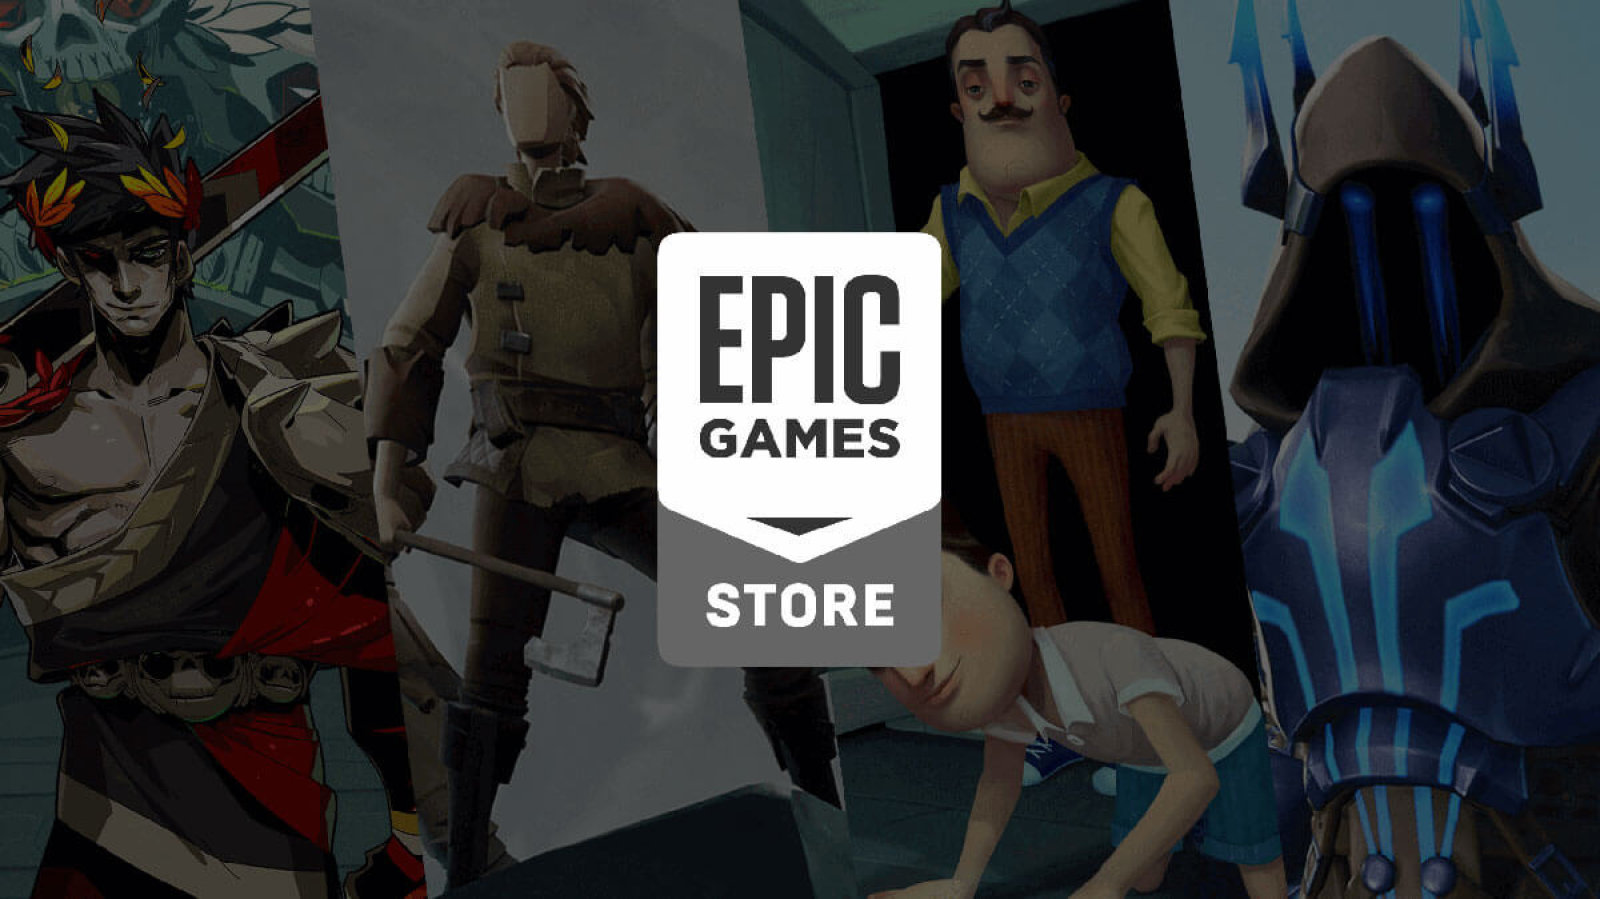 Epic Games Store Tim Sweeney PC The Division 2 Exclusive Exclusives